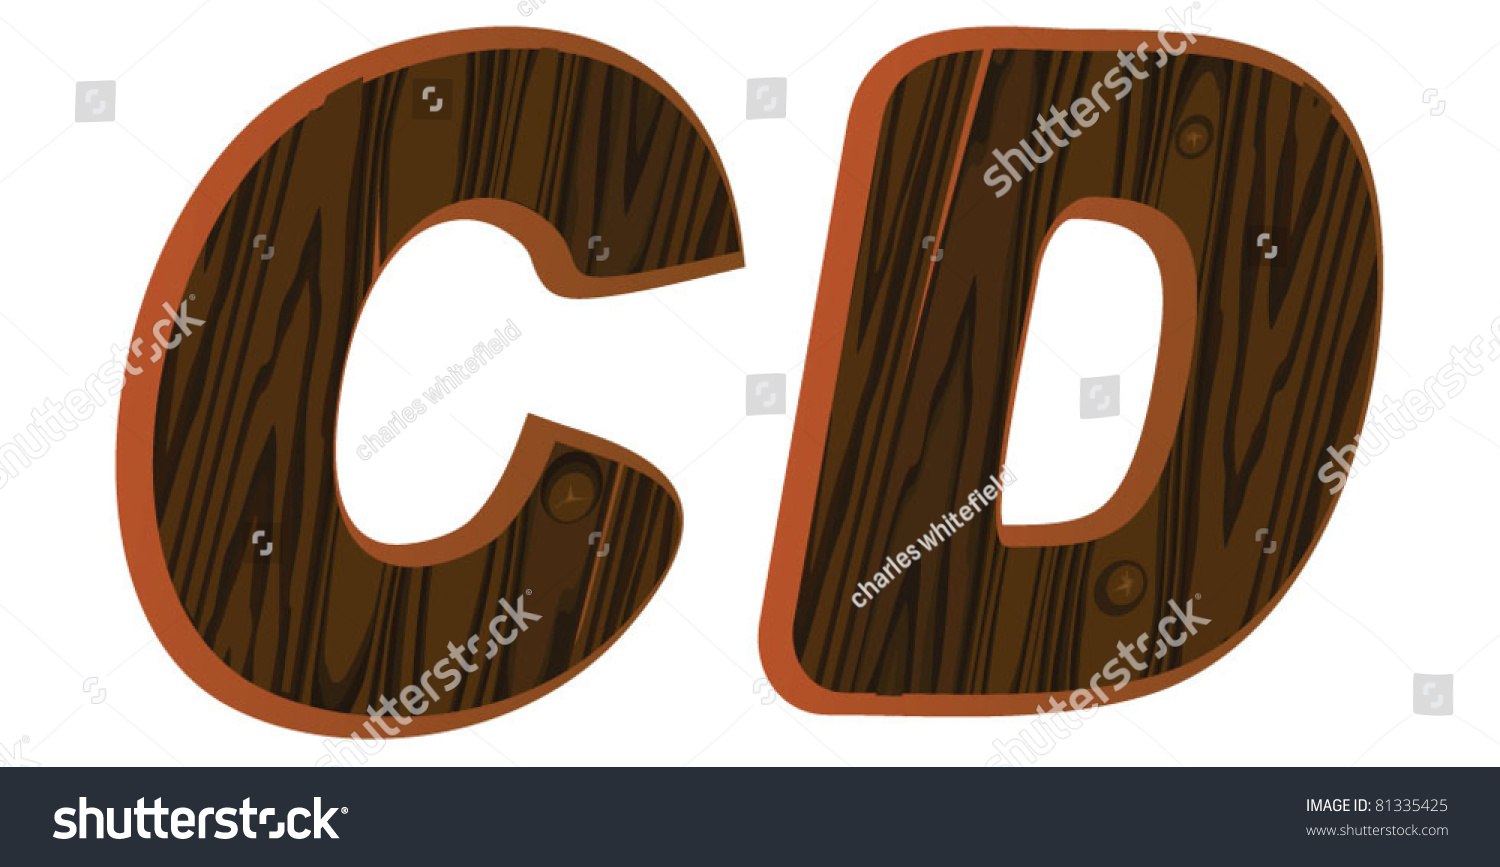 c d wood font isolated wooden letter type stock vector illustration 81335425 shutterstock